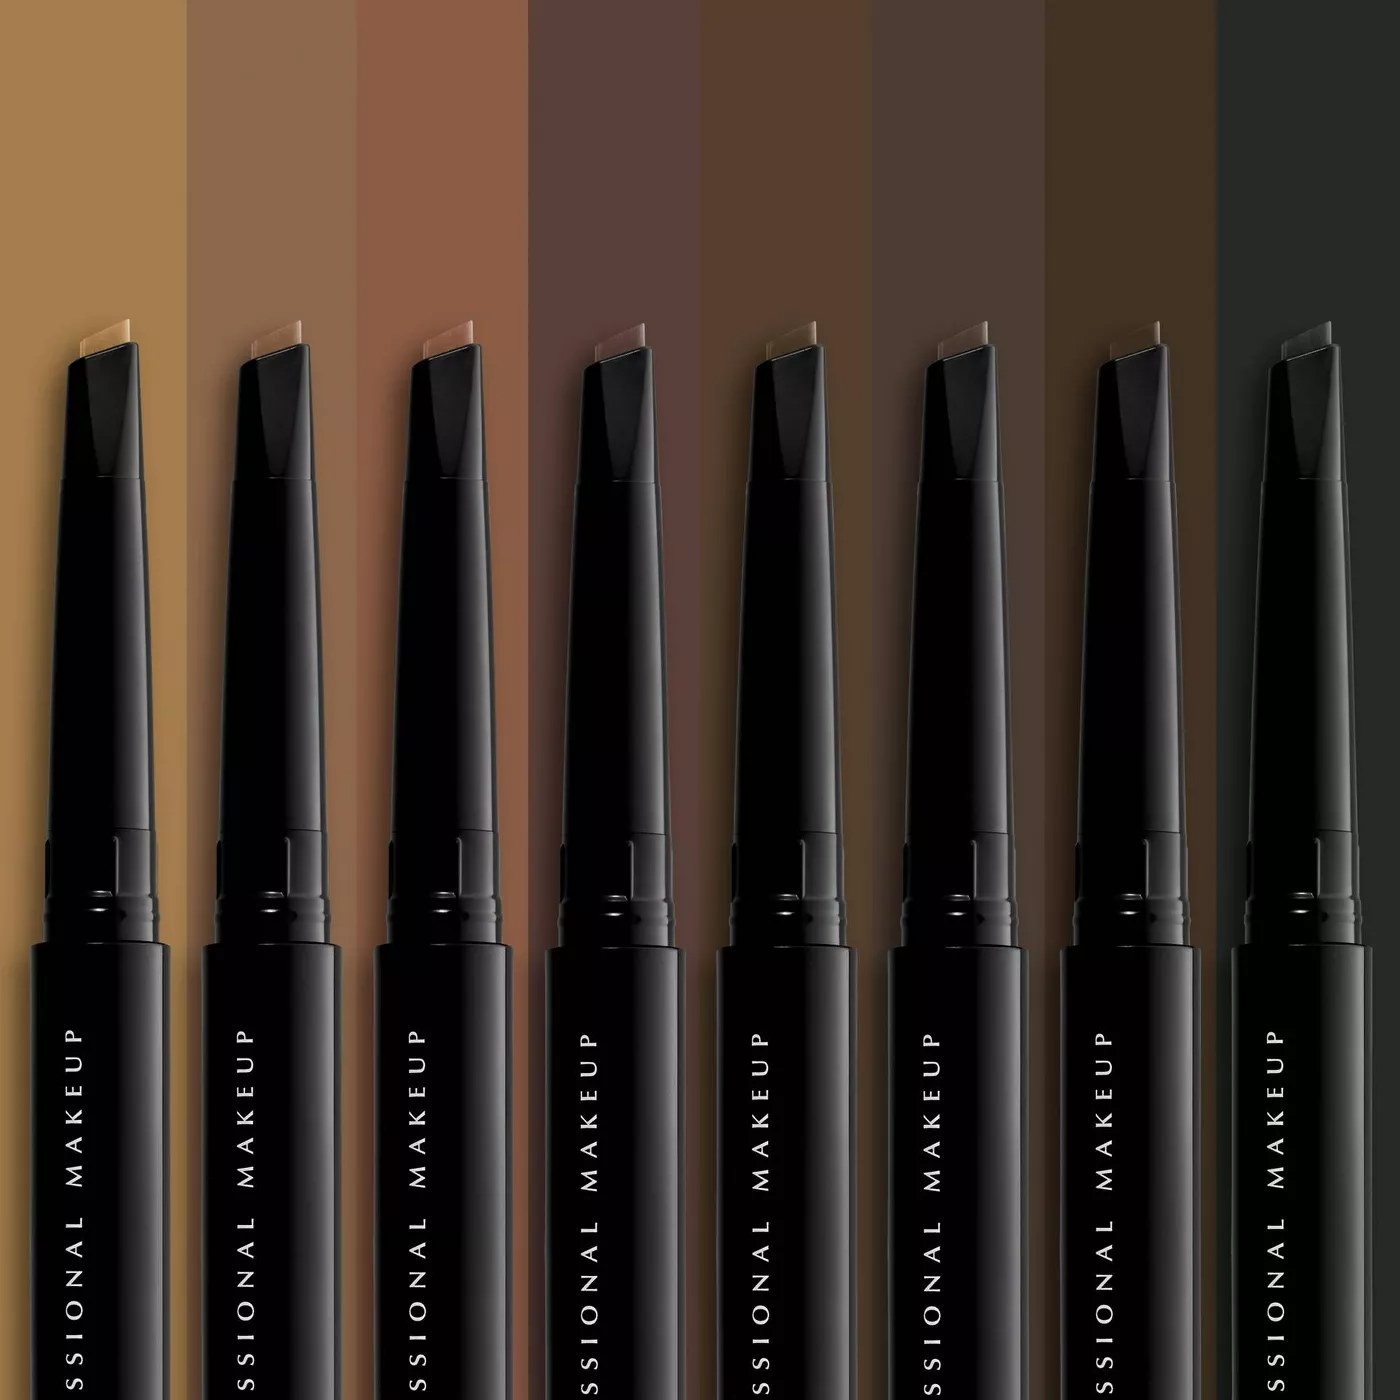 NYX Professional Makeup Eyebrow Pomade Pencil in eight of the nine available shades